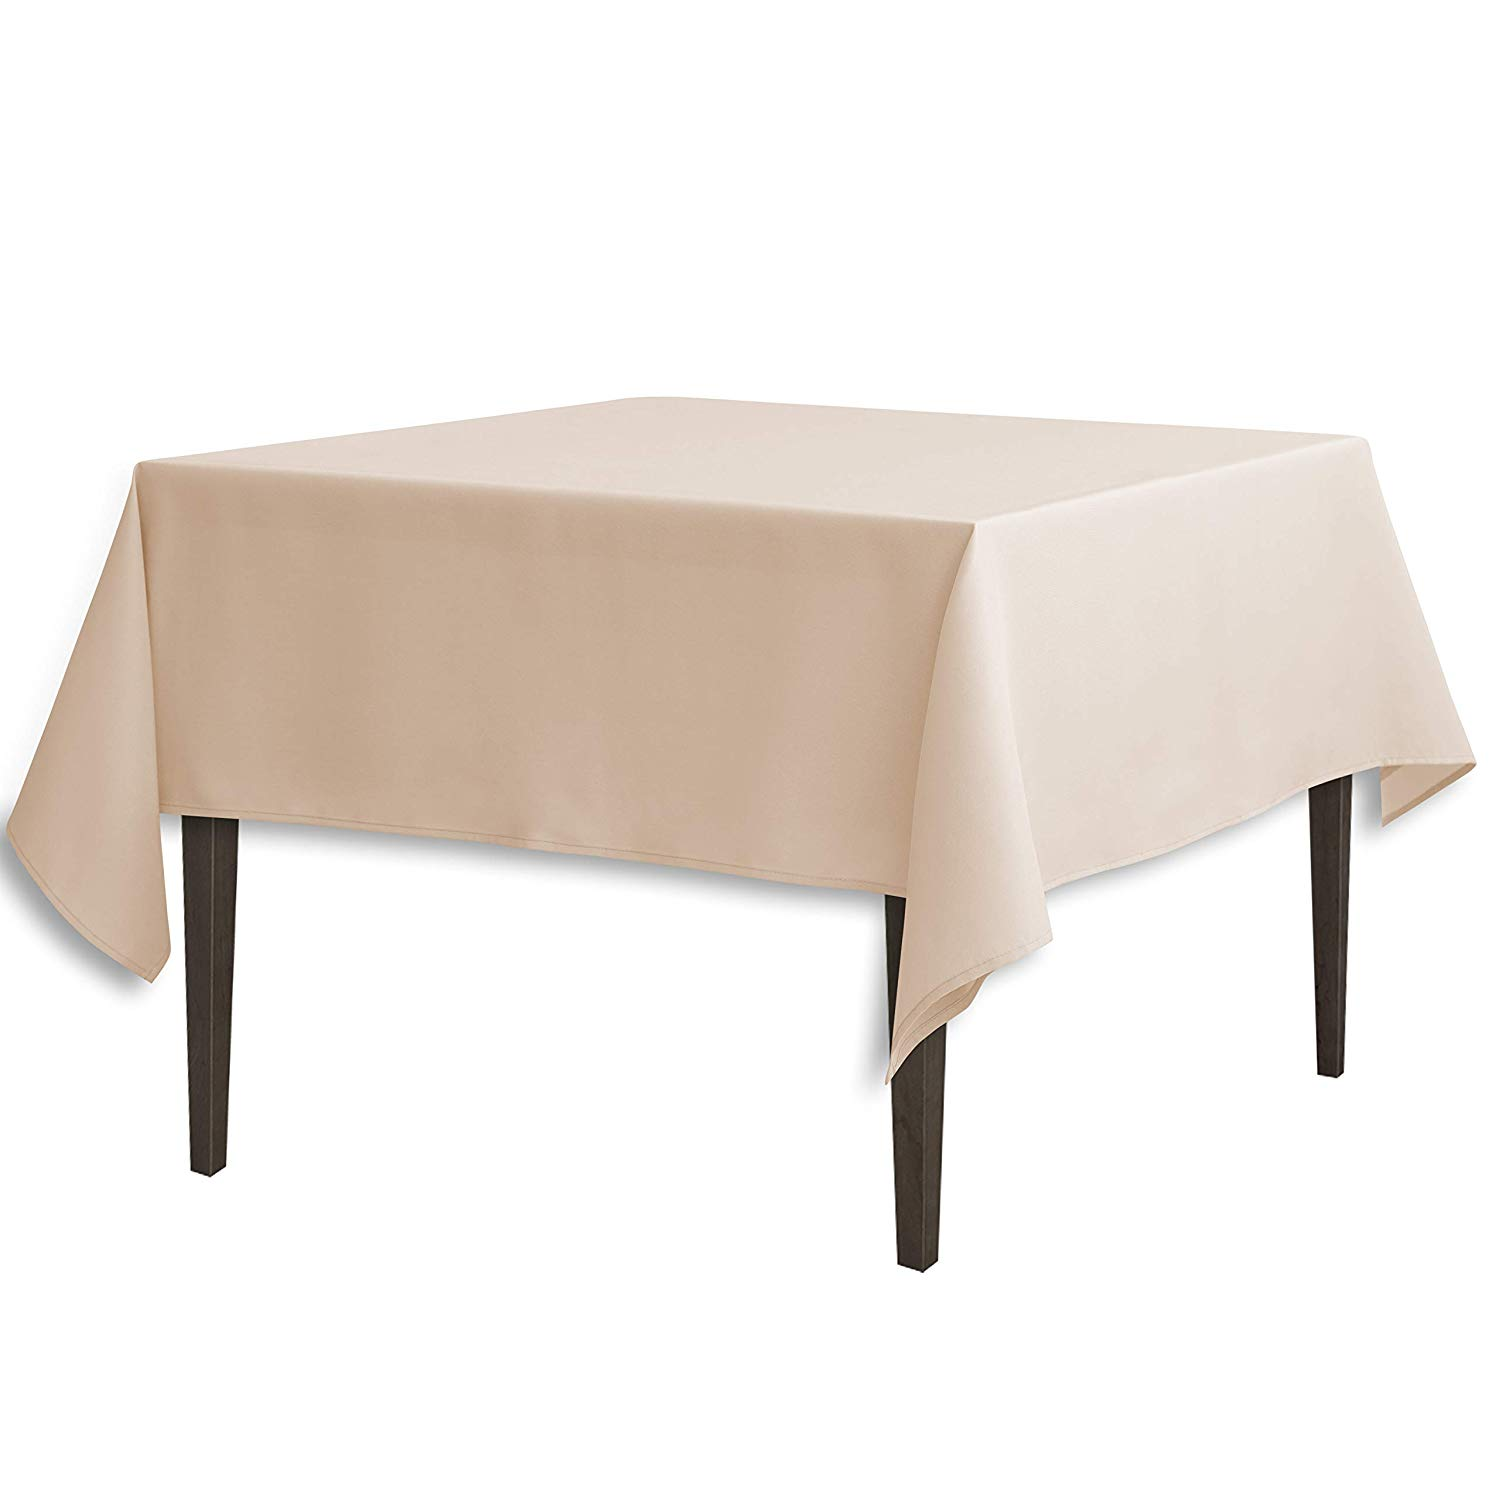 linentablecloth inch square polyester tablecloth round accent beige home kitchen west elm outdoor furniture bedroom side drawers market patio umbrella purple clearance lawn solid